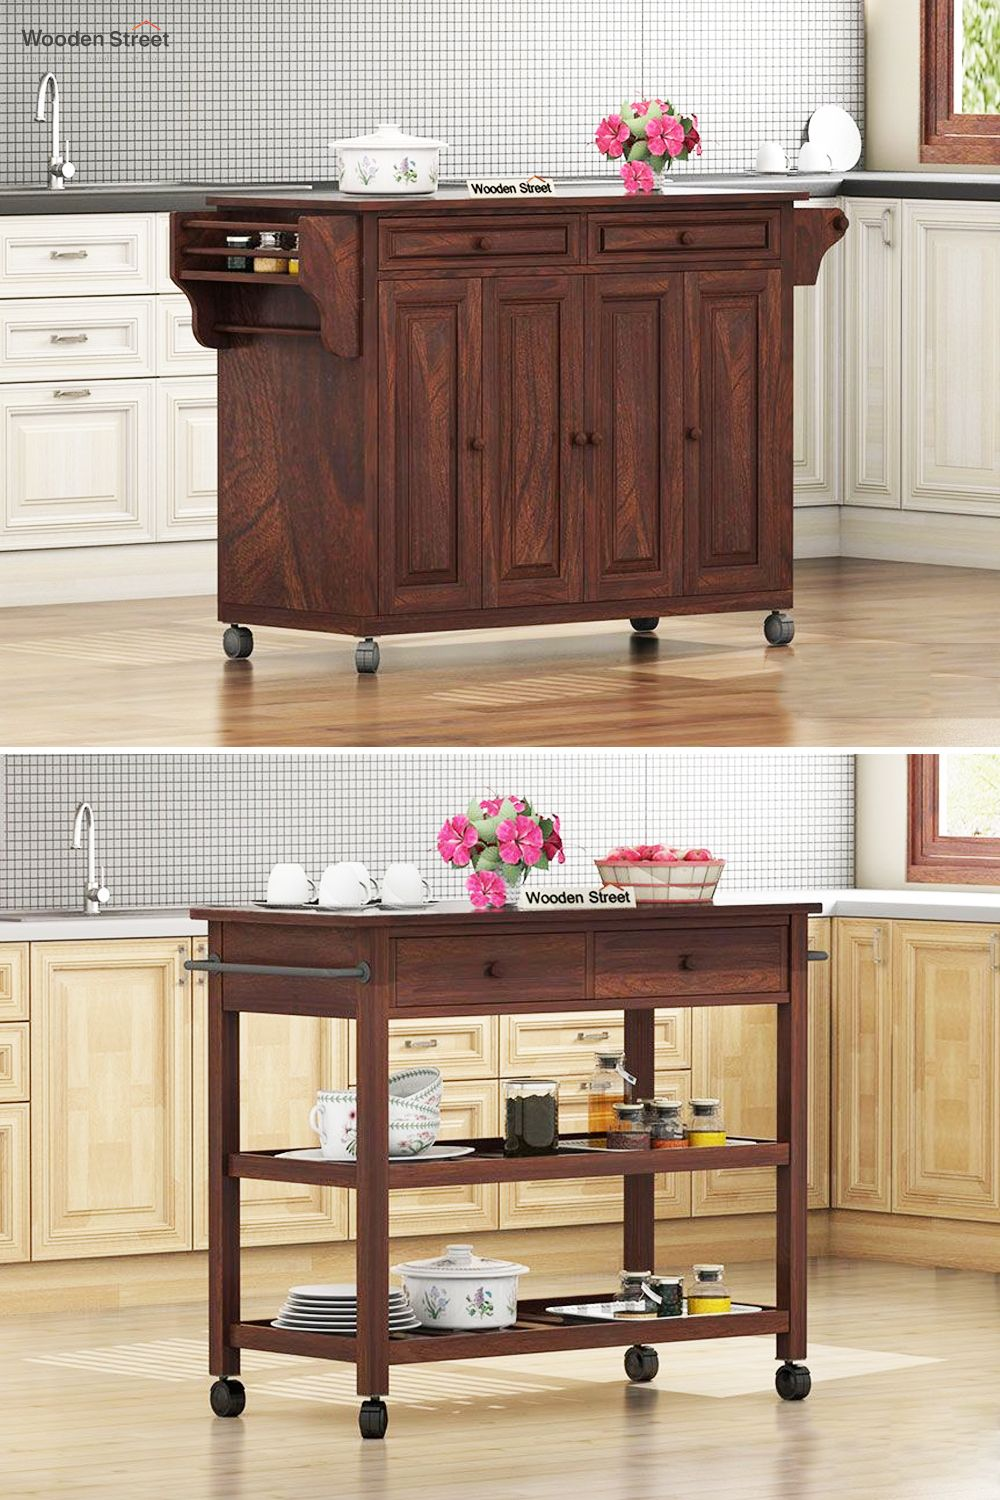 Buy Elsa Kitchen Island Walnut Finish Online In India Wooden Street Modular Kitchen Cabinets Modern Kitchen Design Kitchen Cabinet Design